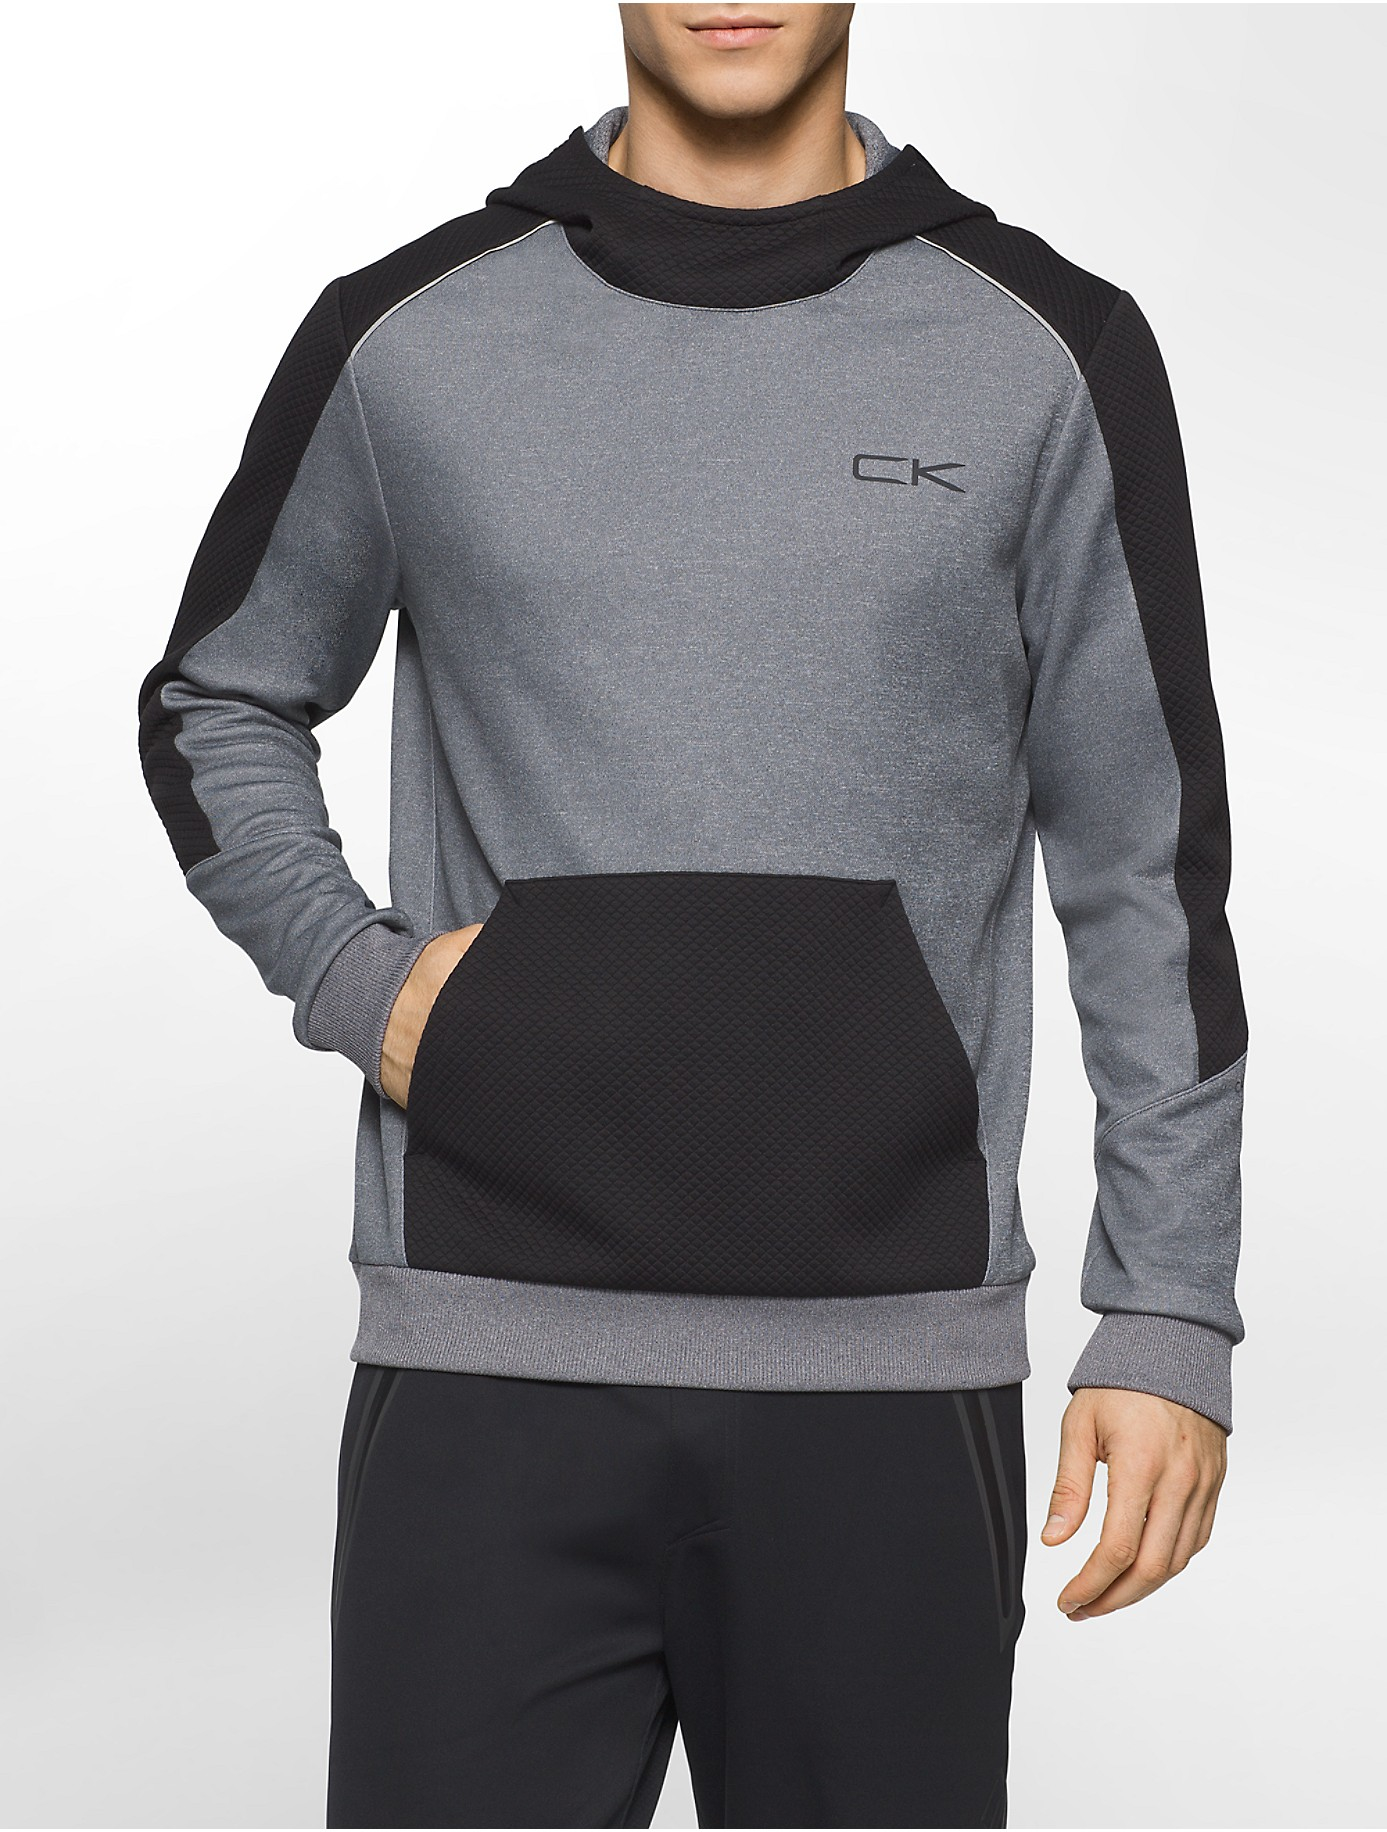 calvin klein white label performance textured fleece hoodie in gray for men lyst. Black Bedroom Furniture Sets. Home Design Ideas